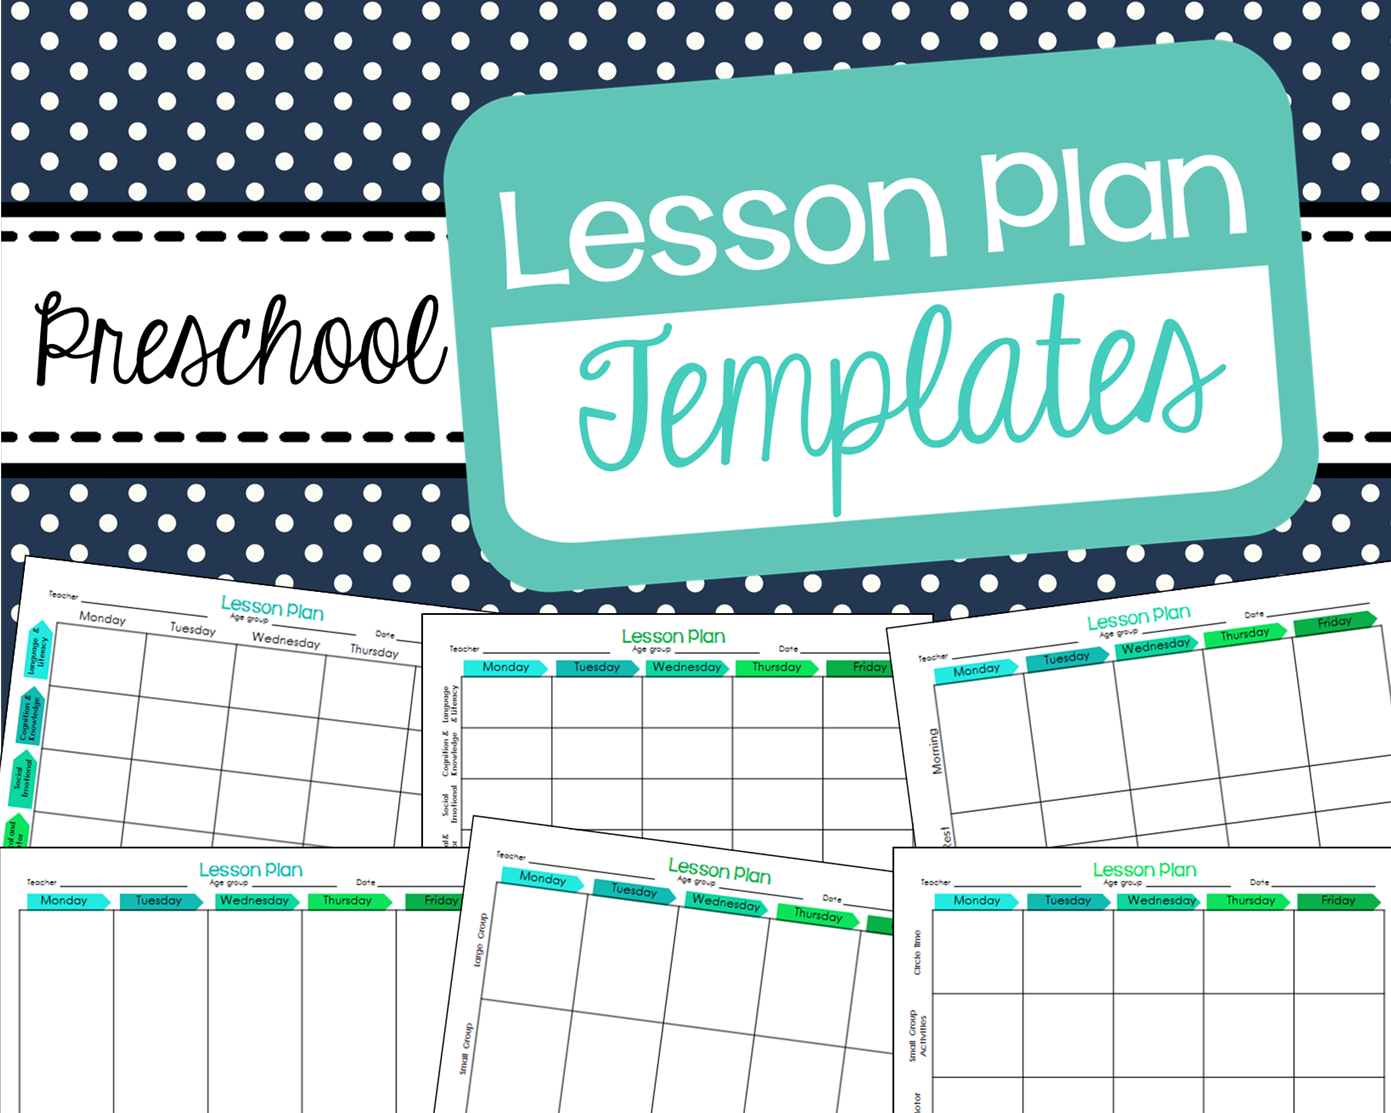 Printable Preschool Planner  On Sale Now  Preschool Planner